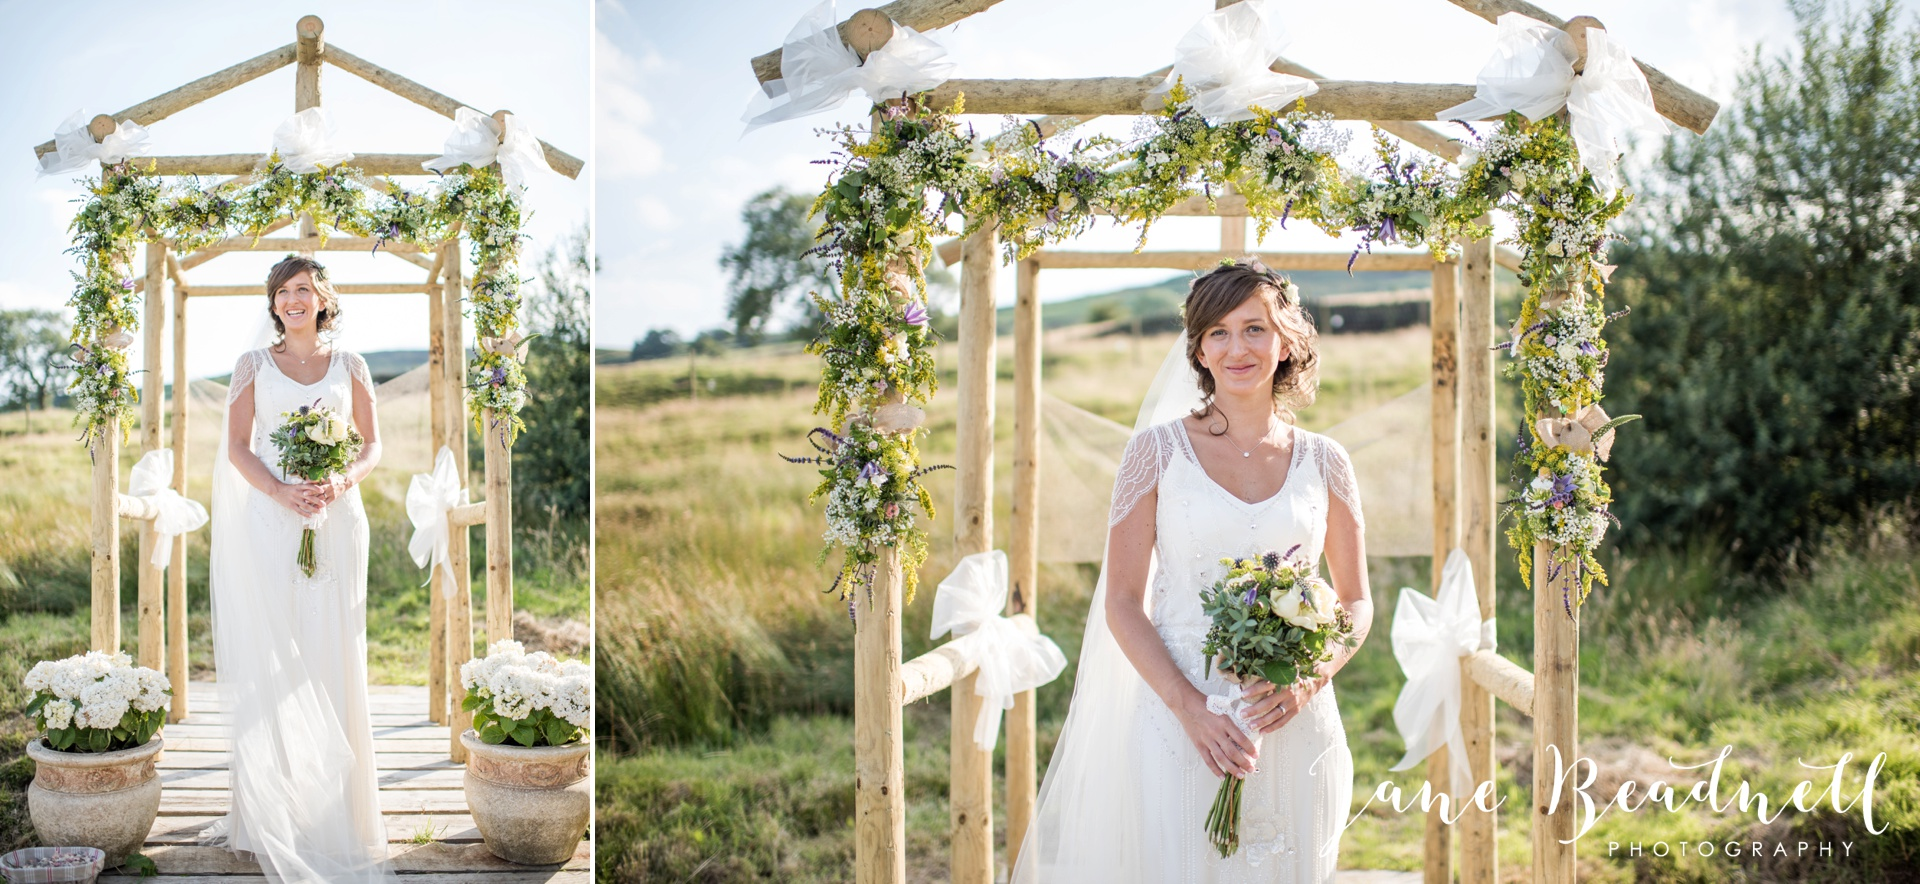 Jane Beadnell fine art wedding photographer Leeds_0076